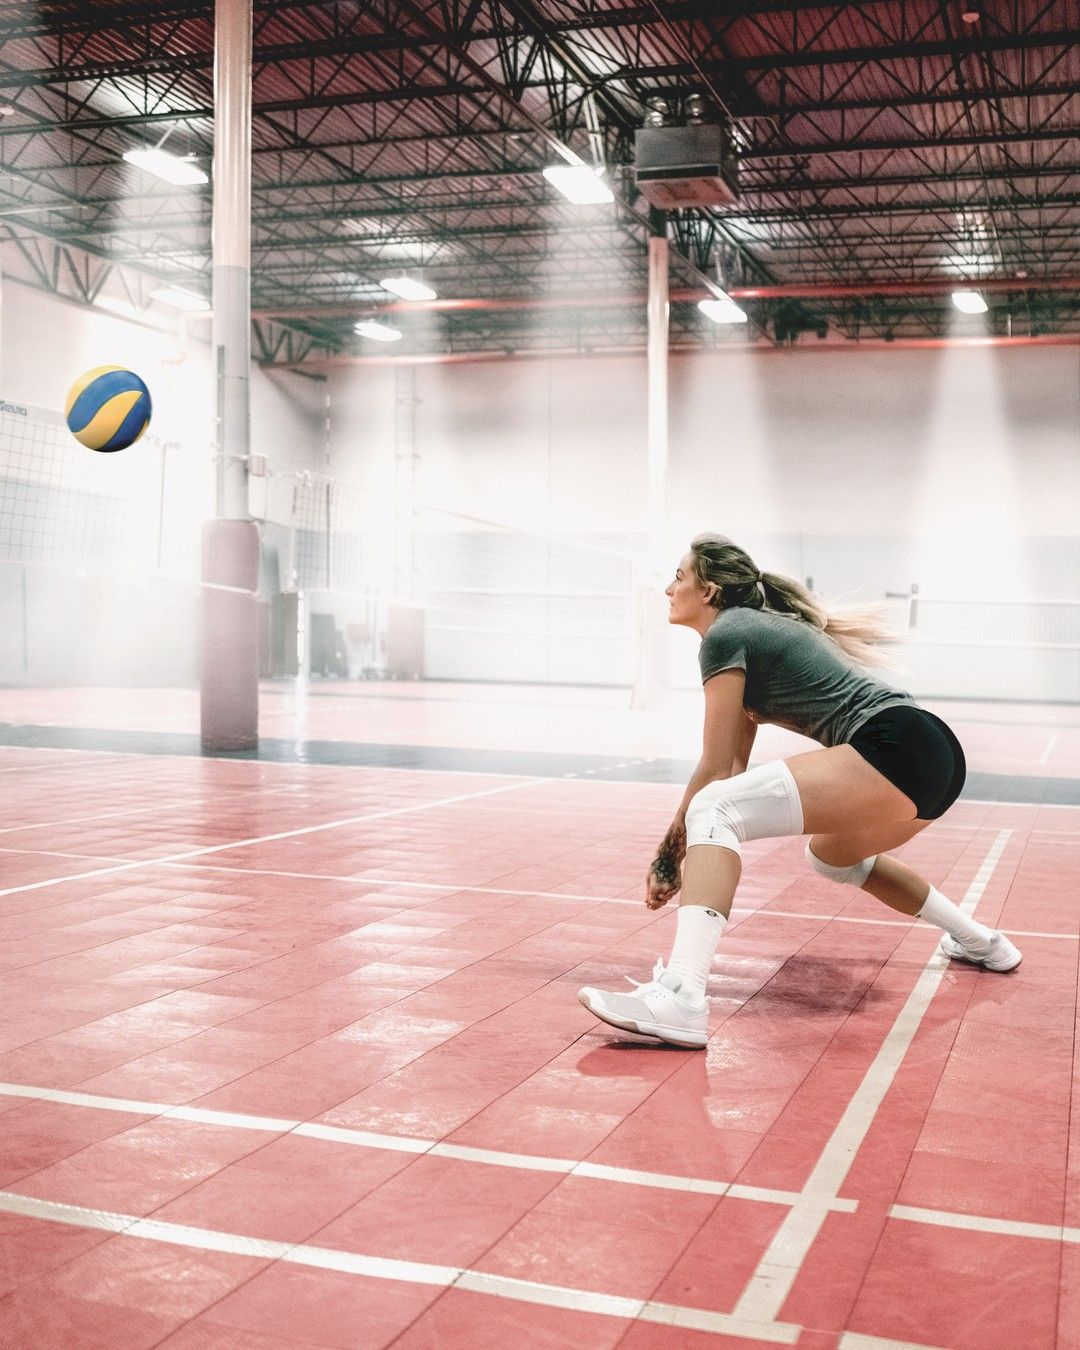 Support Without Restriction Lasso S Volleyball Performance Compression Socks Are Designed To Move With You Las In 2020 Ankle Support Compression Socks Supportive